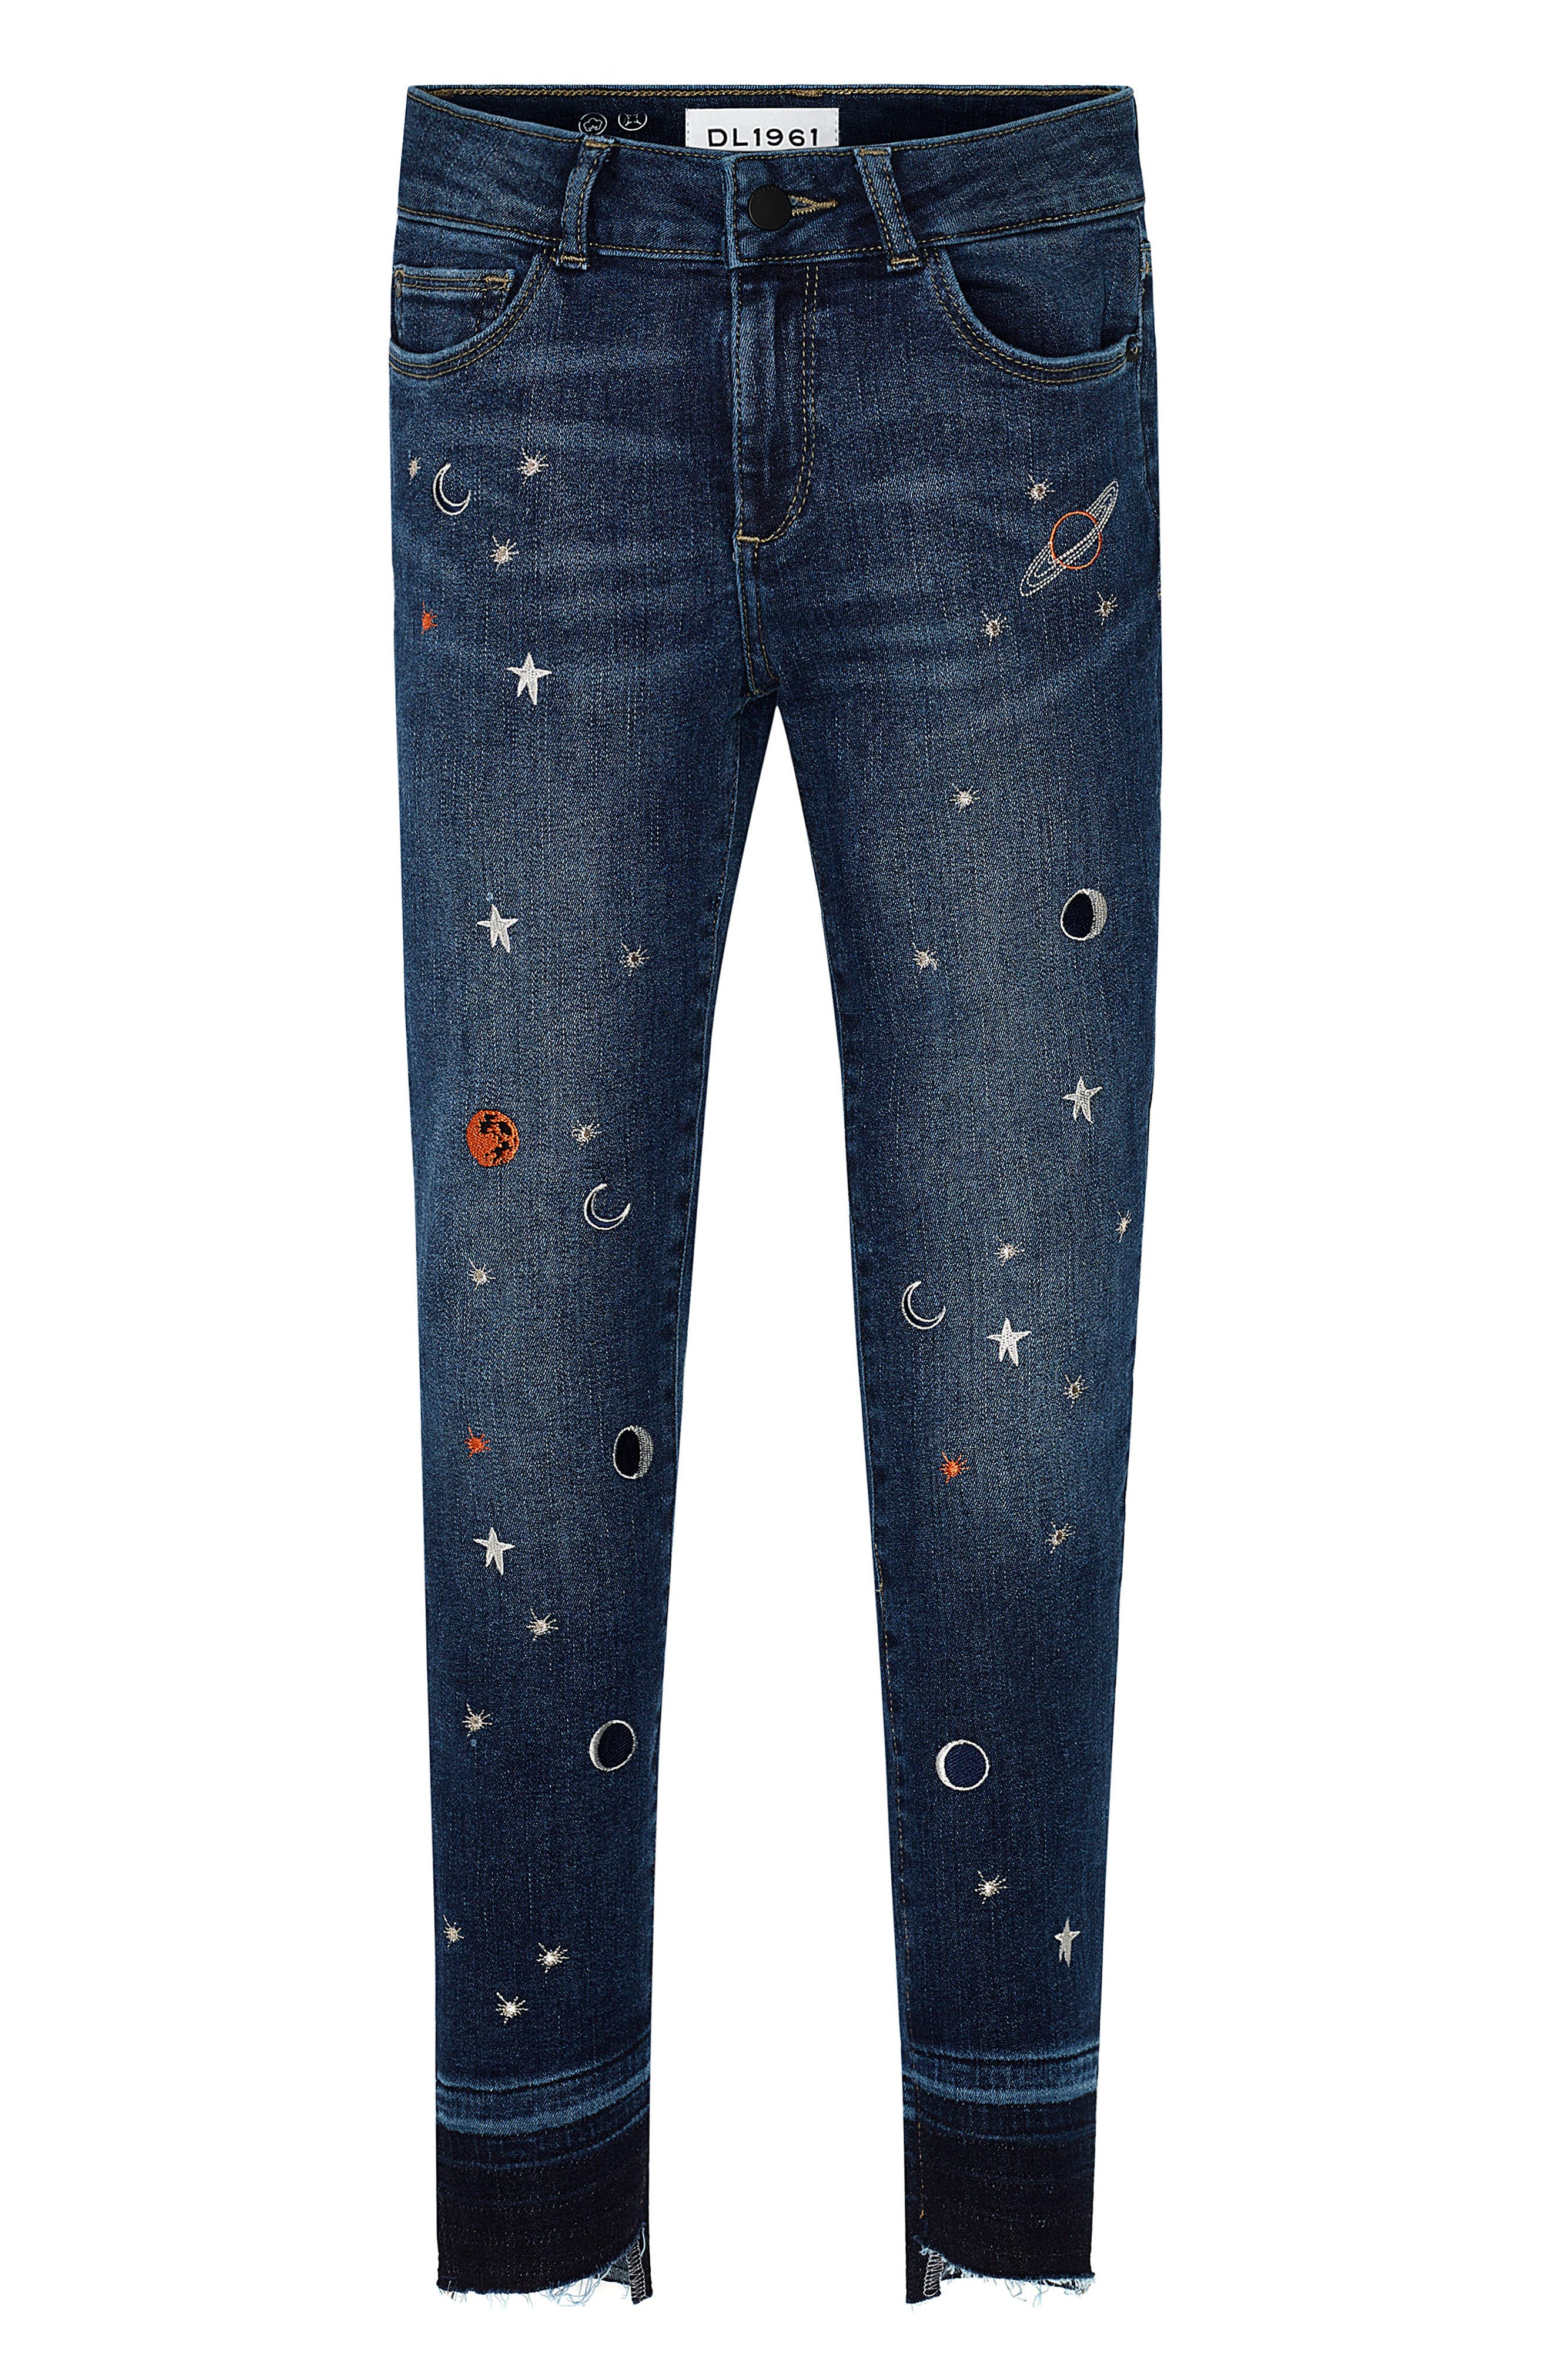 Main Image - DL1961 Chloe Galaxy Embroidered Skinny Jeans (Big Girls)